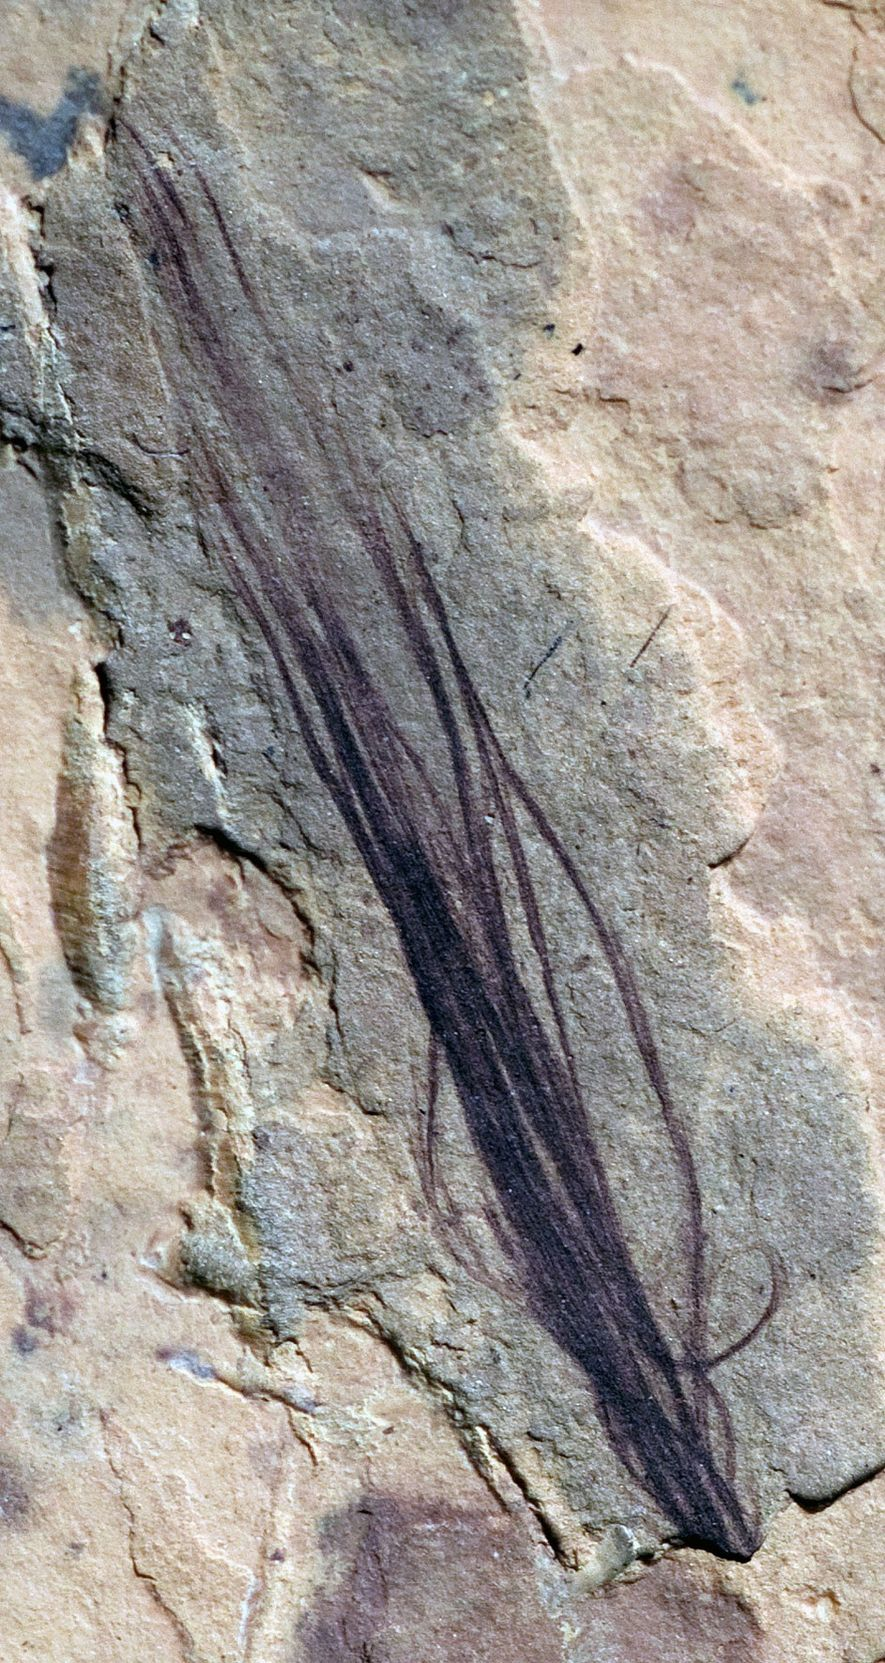 The set of 10 well-preserved fossil feathers found at a dig site in Australia includes a ...